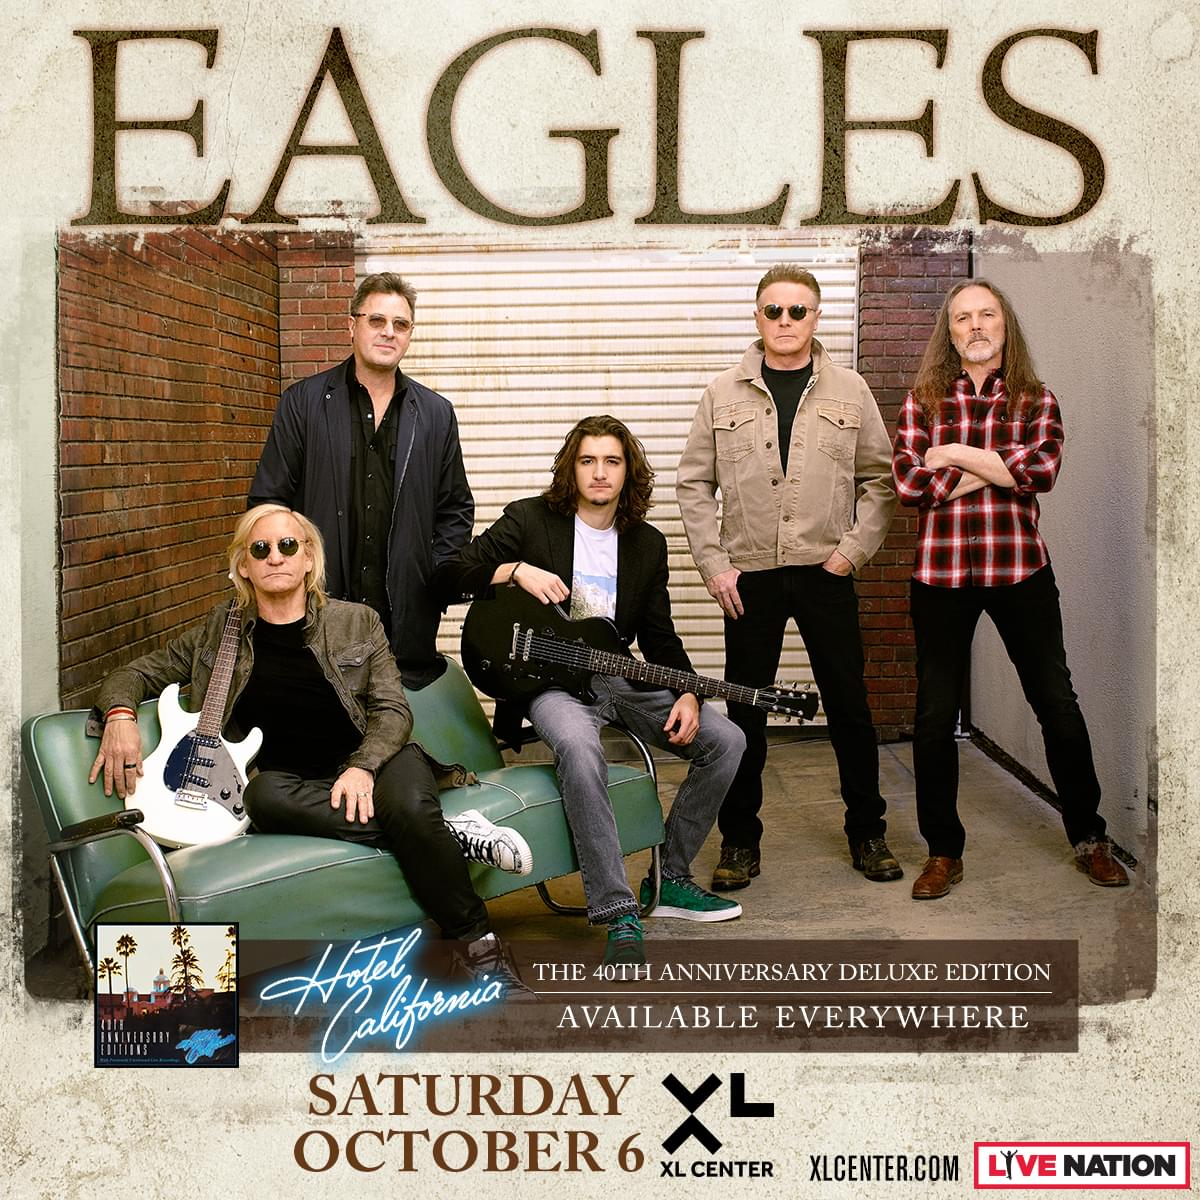 Win tickets to the Eagles